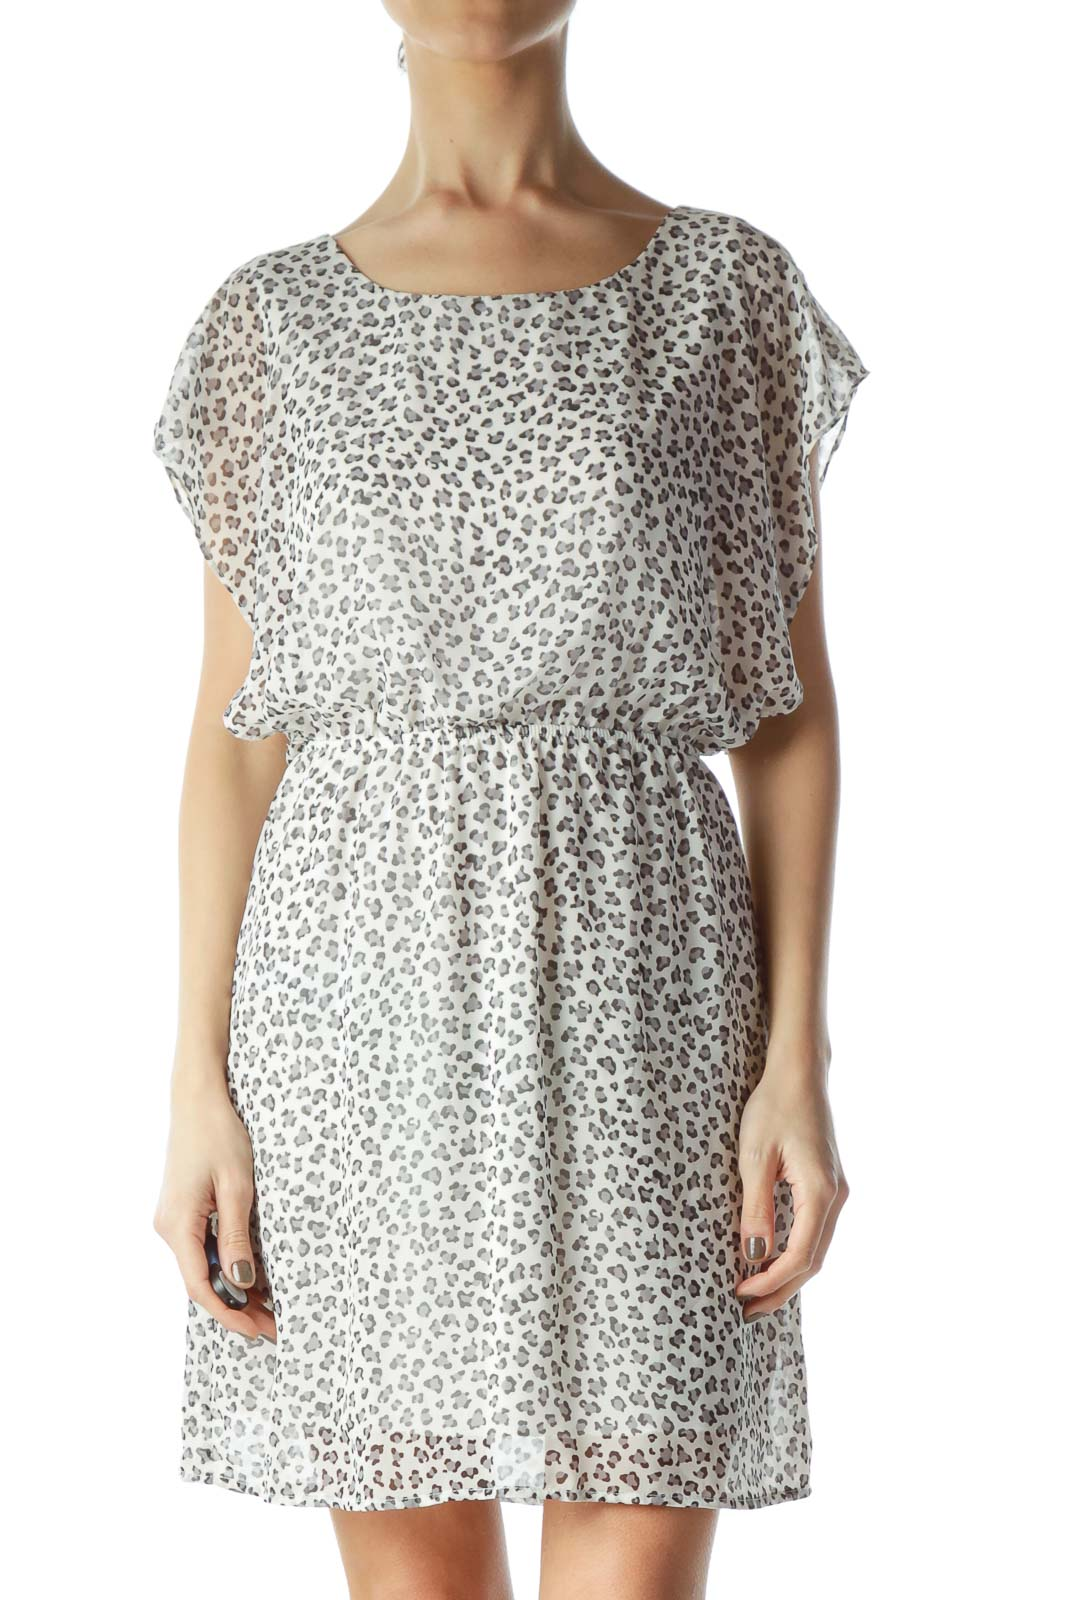 White Cheetah Print Dress Front